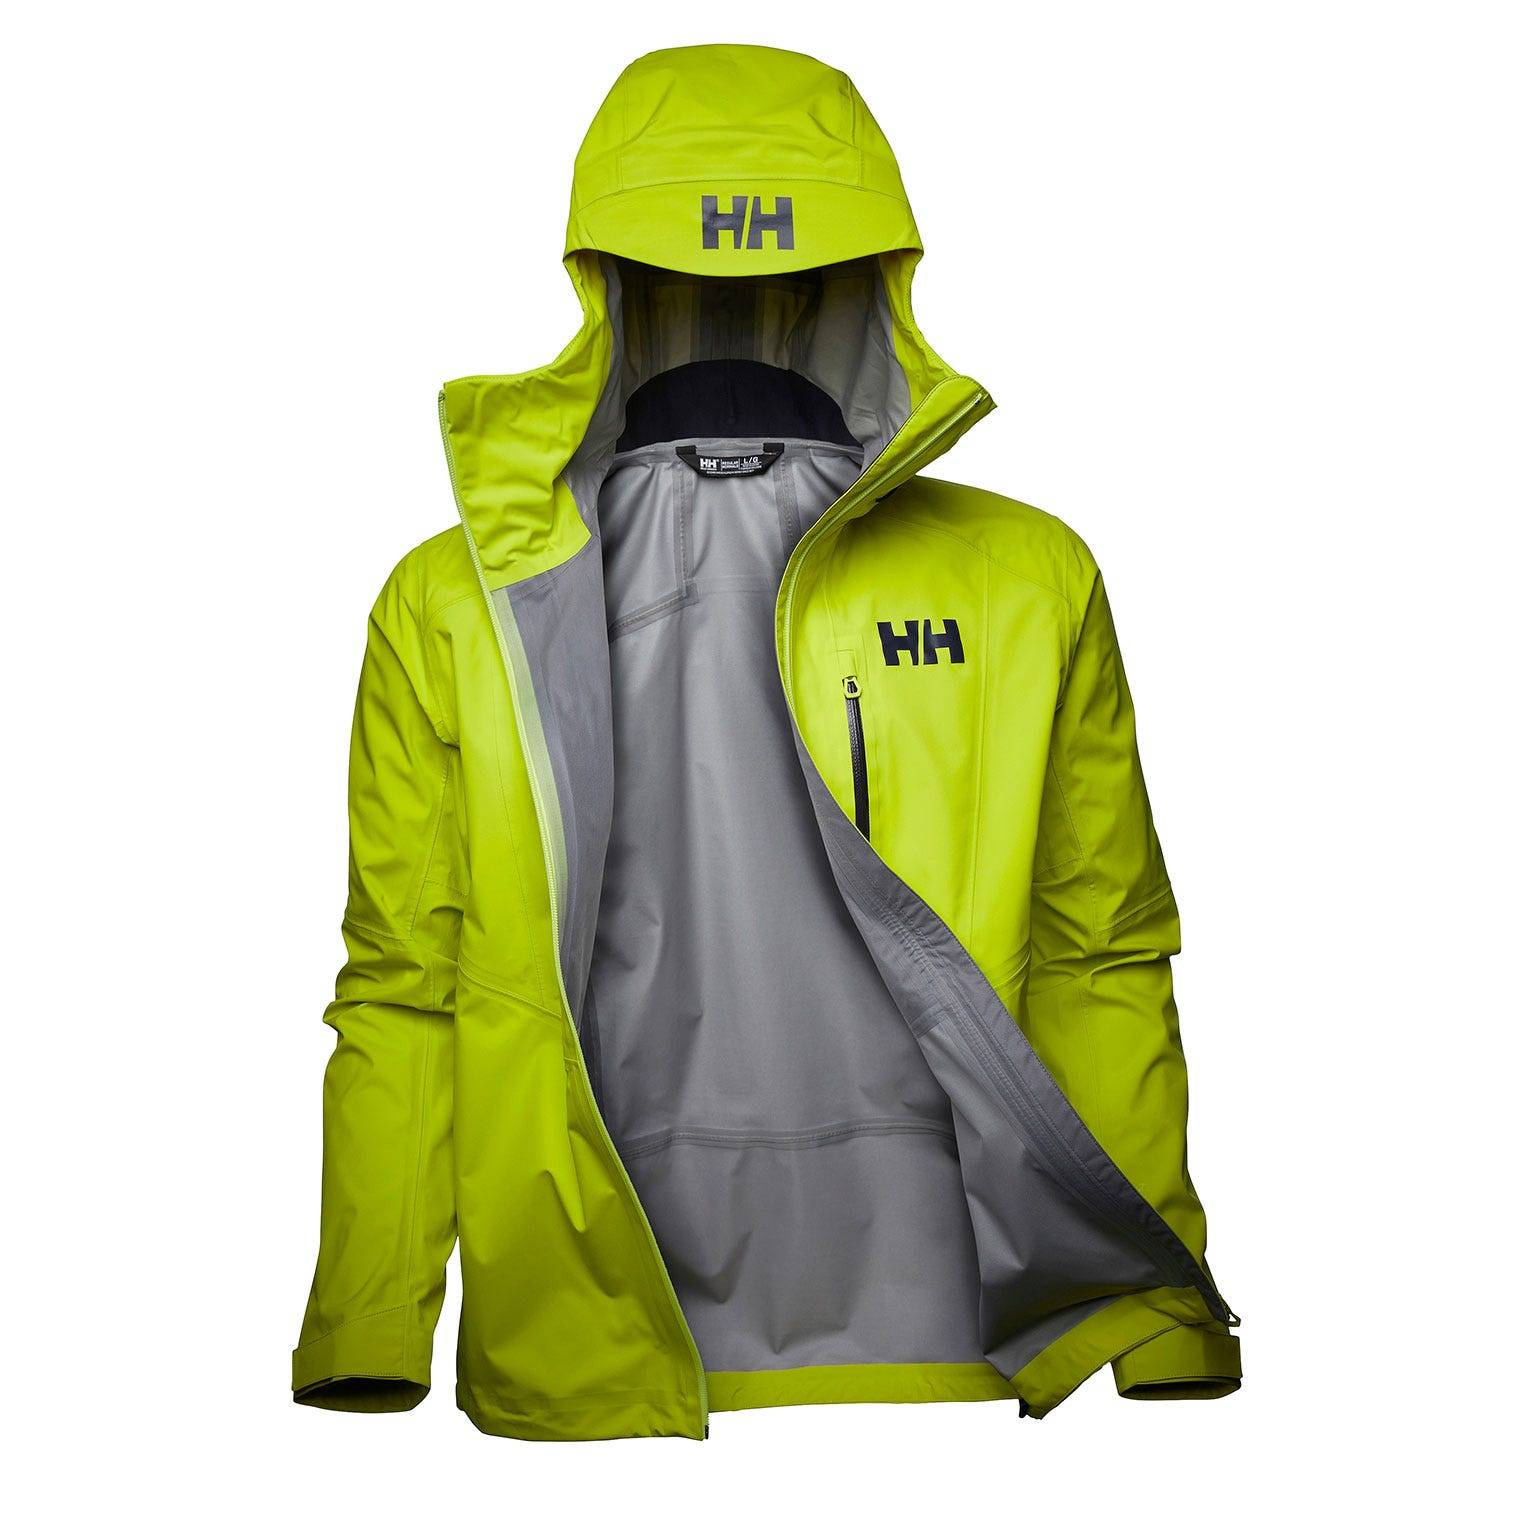 Helly Hansen Verglas 3l Shell Jacket Mens Hiking Yellow M